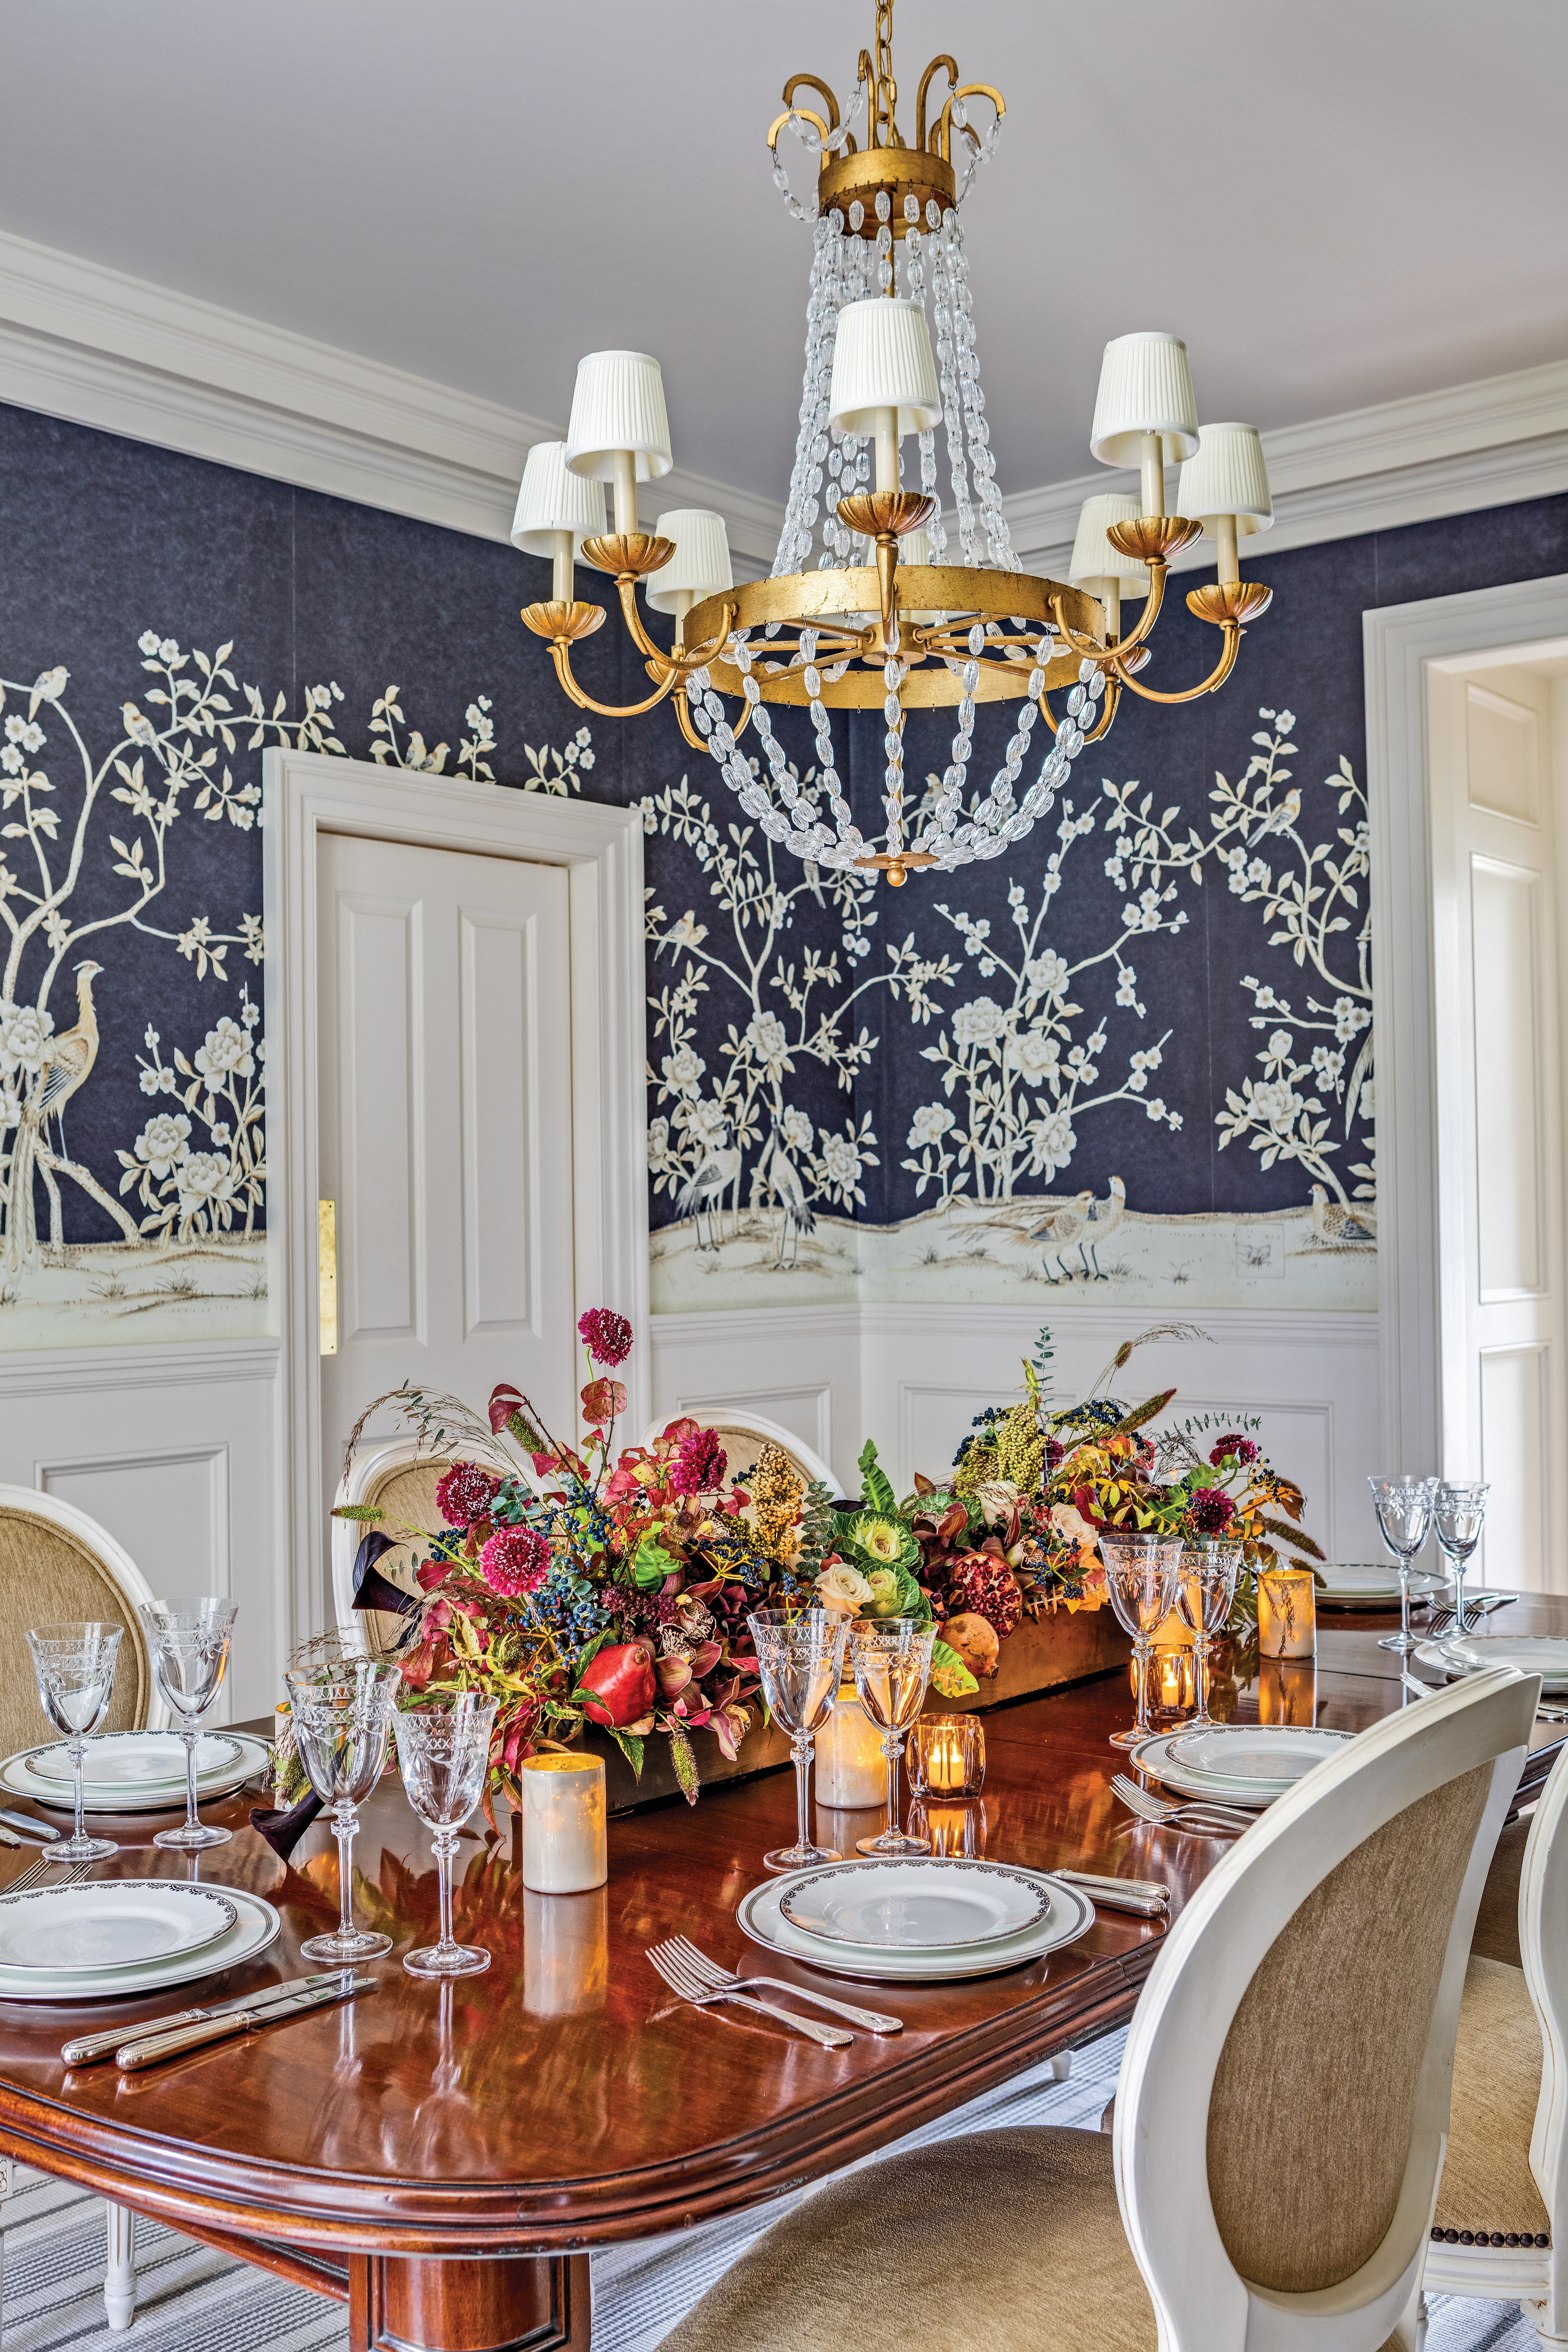 An antique chandelier lights the dining room.